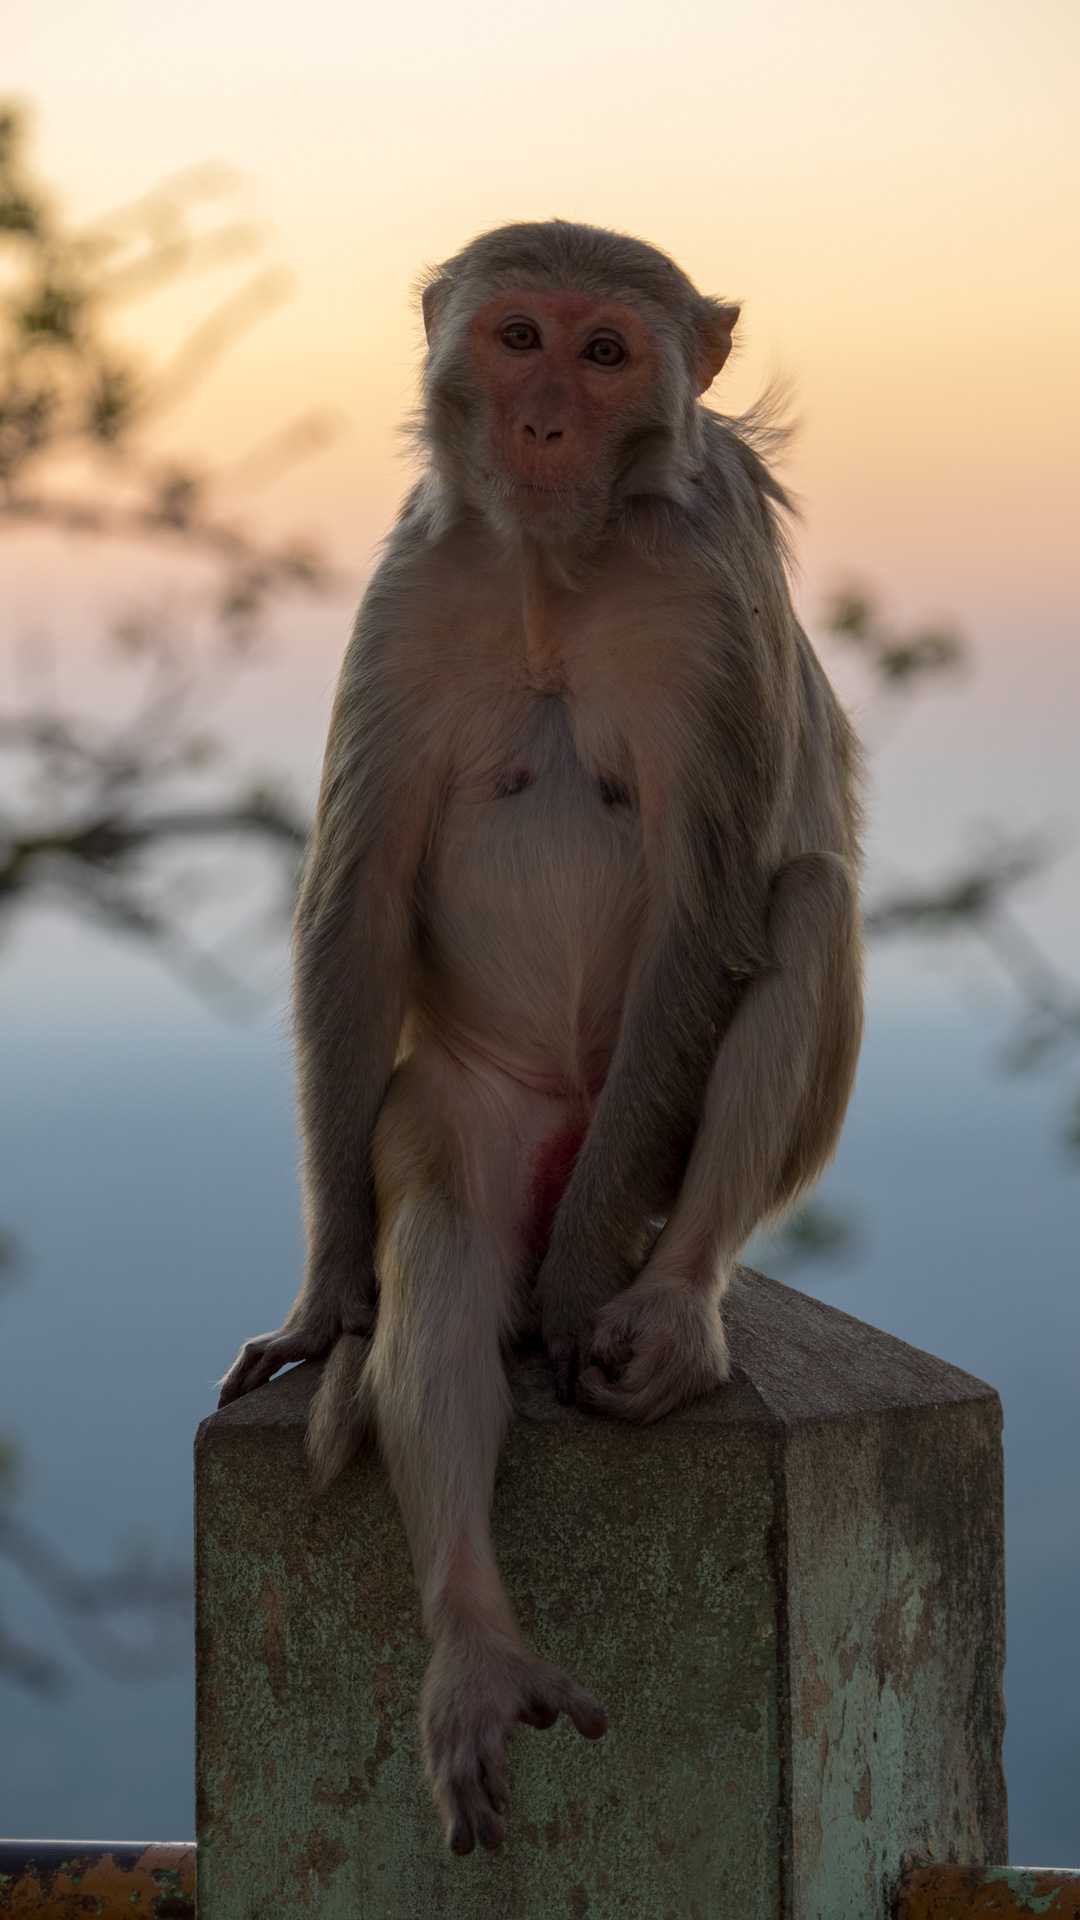 Contemplative Monkey at Mount Popp